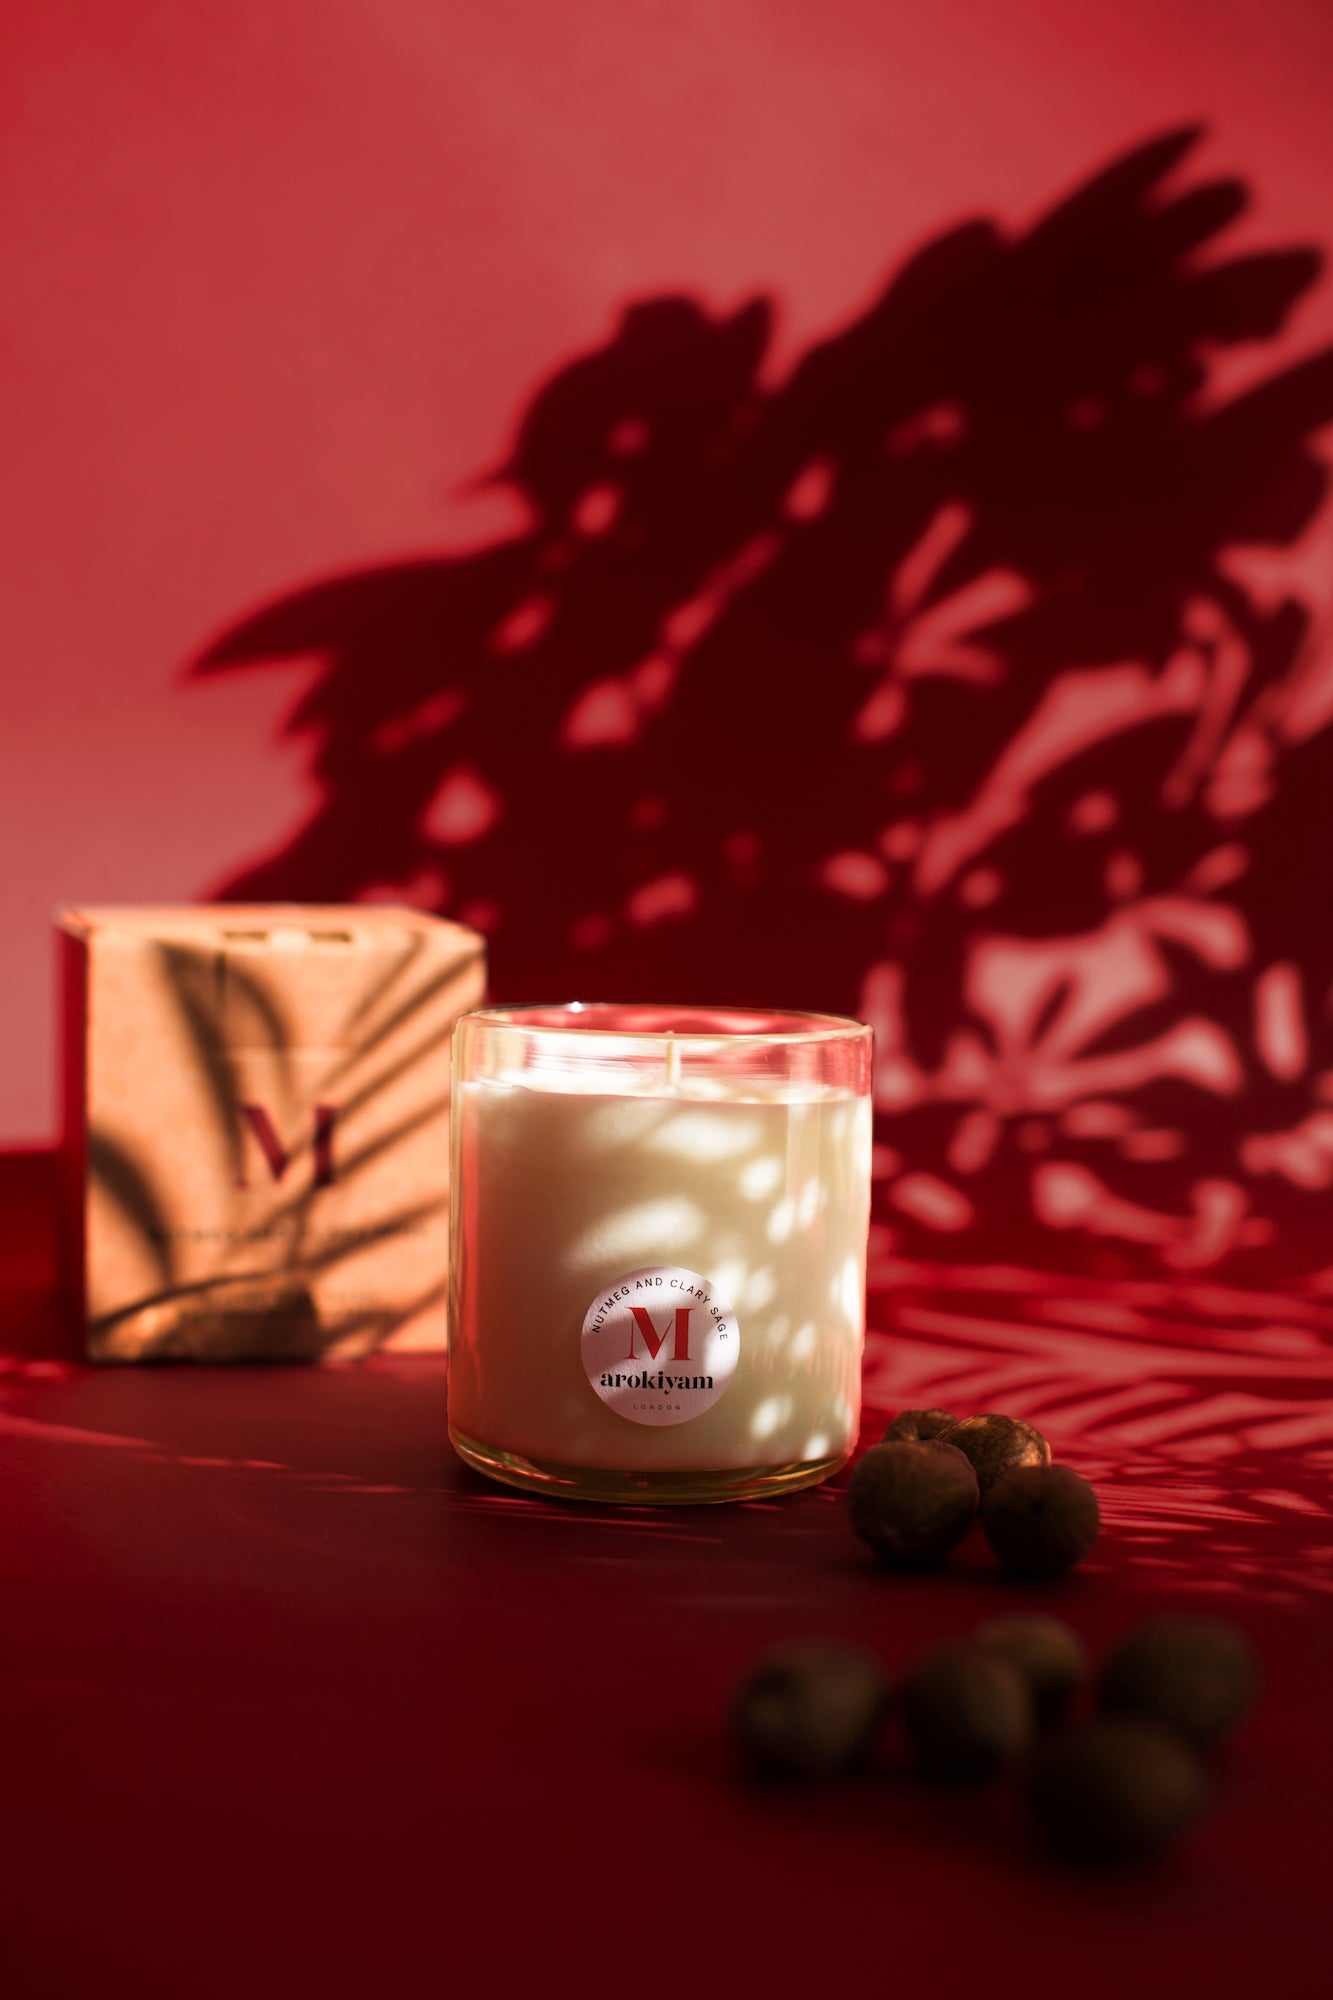 M | Nutmeg and Clary Sage Candle